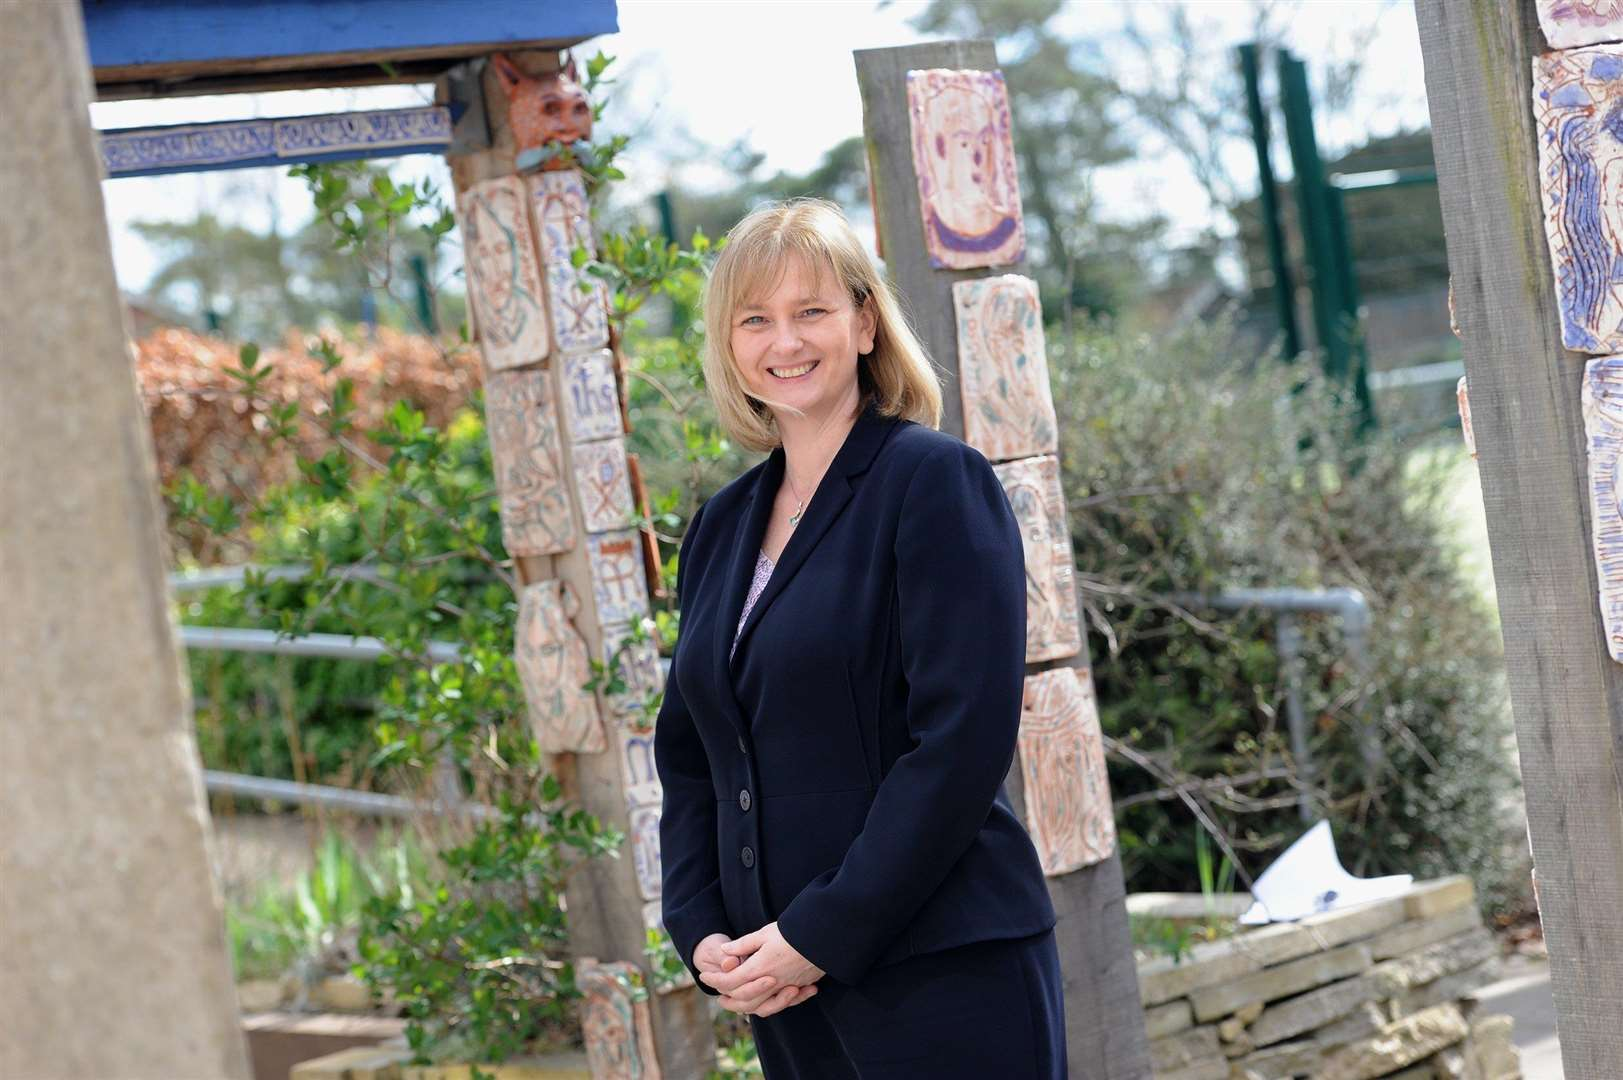 Kate Pereira, headteacher at St Benedict's Catholic School in Bury St Edmunds, is stepping down after two years in the role to take up a headship 'closer to home'. Picture: Mecha Morton.